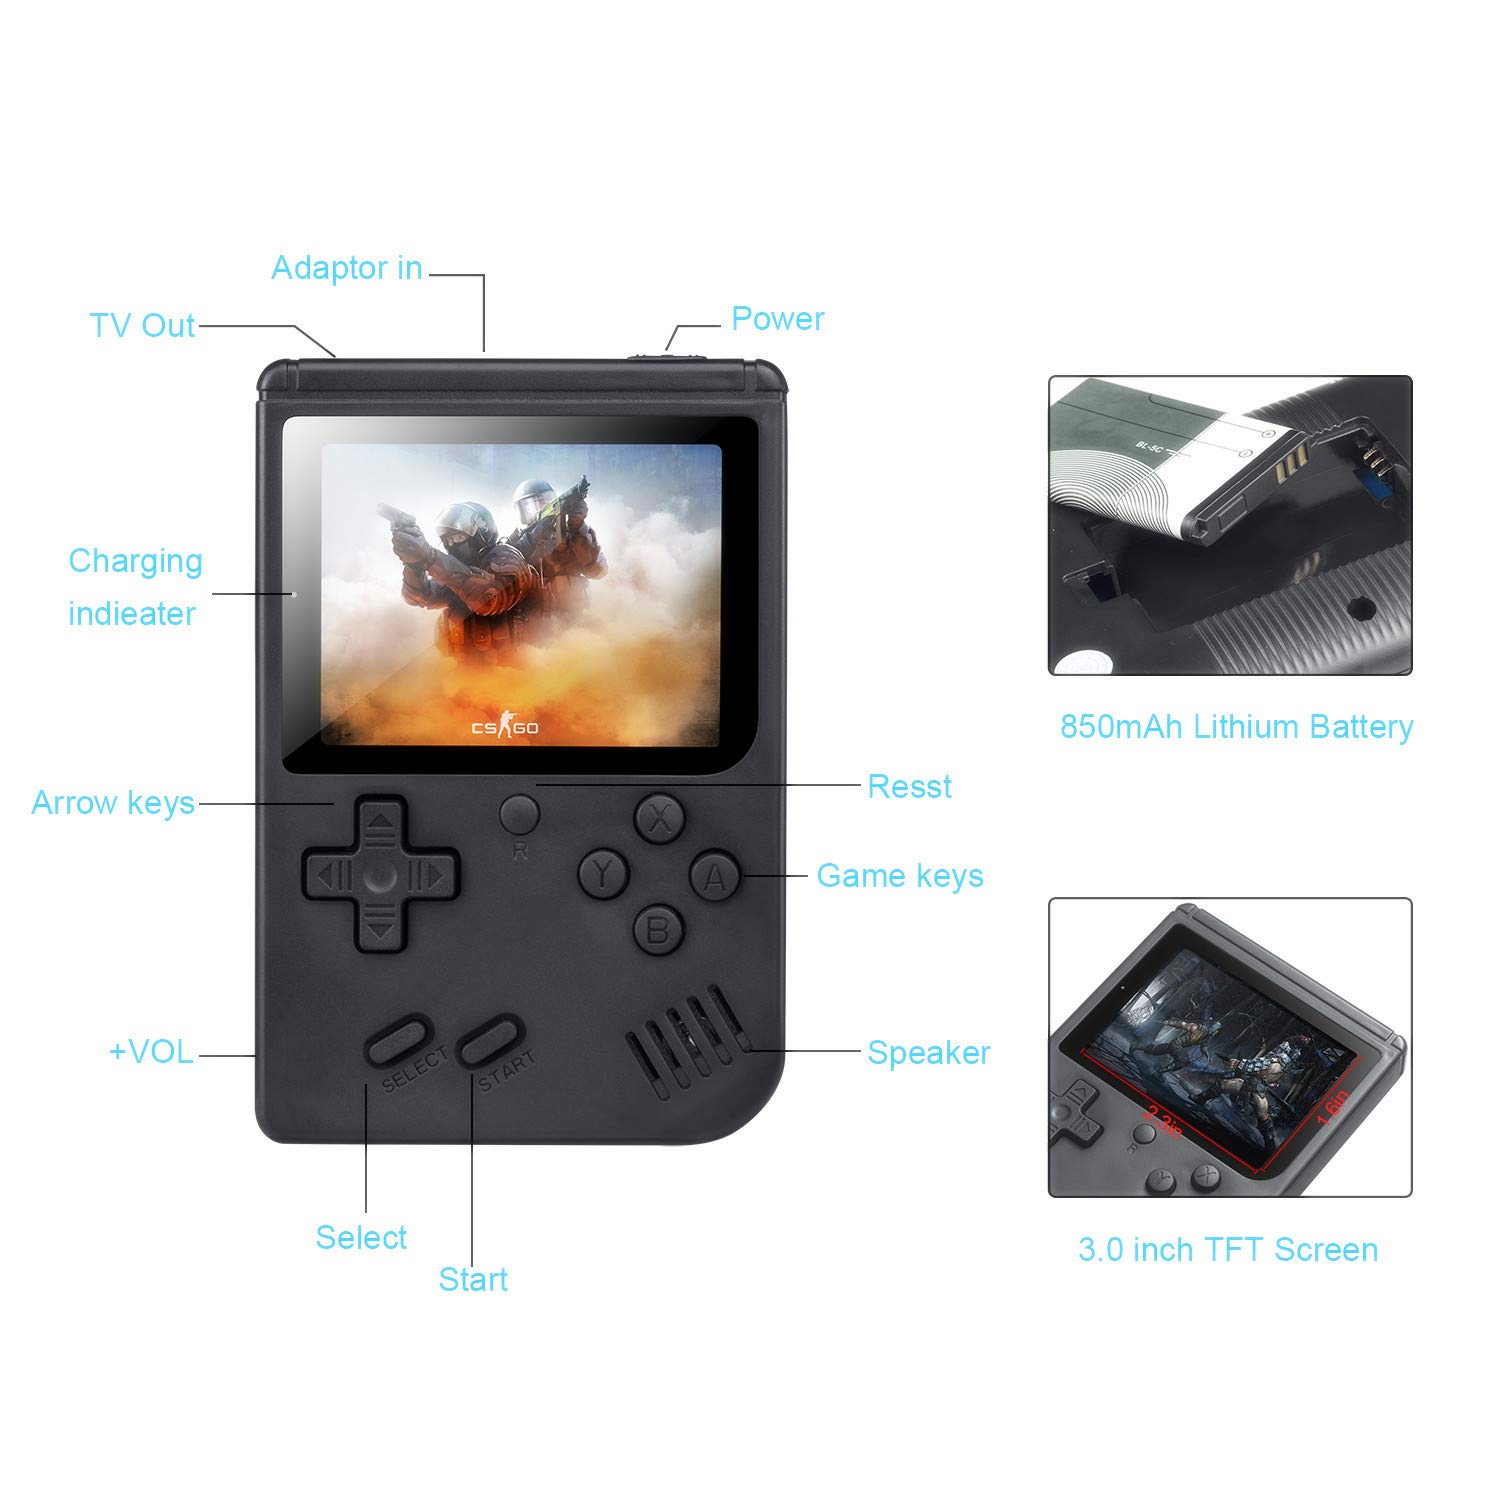 weikin Handheld Game Console, 168 Classic Games 3 Inch LCD Screen Portable Retro Video Game Console Support for Connecting TV and Two Players, Good Gifts for Kids and Adult. by weikin (Image #5)